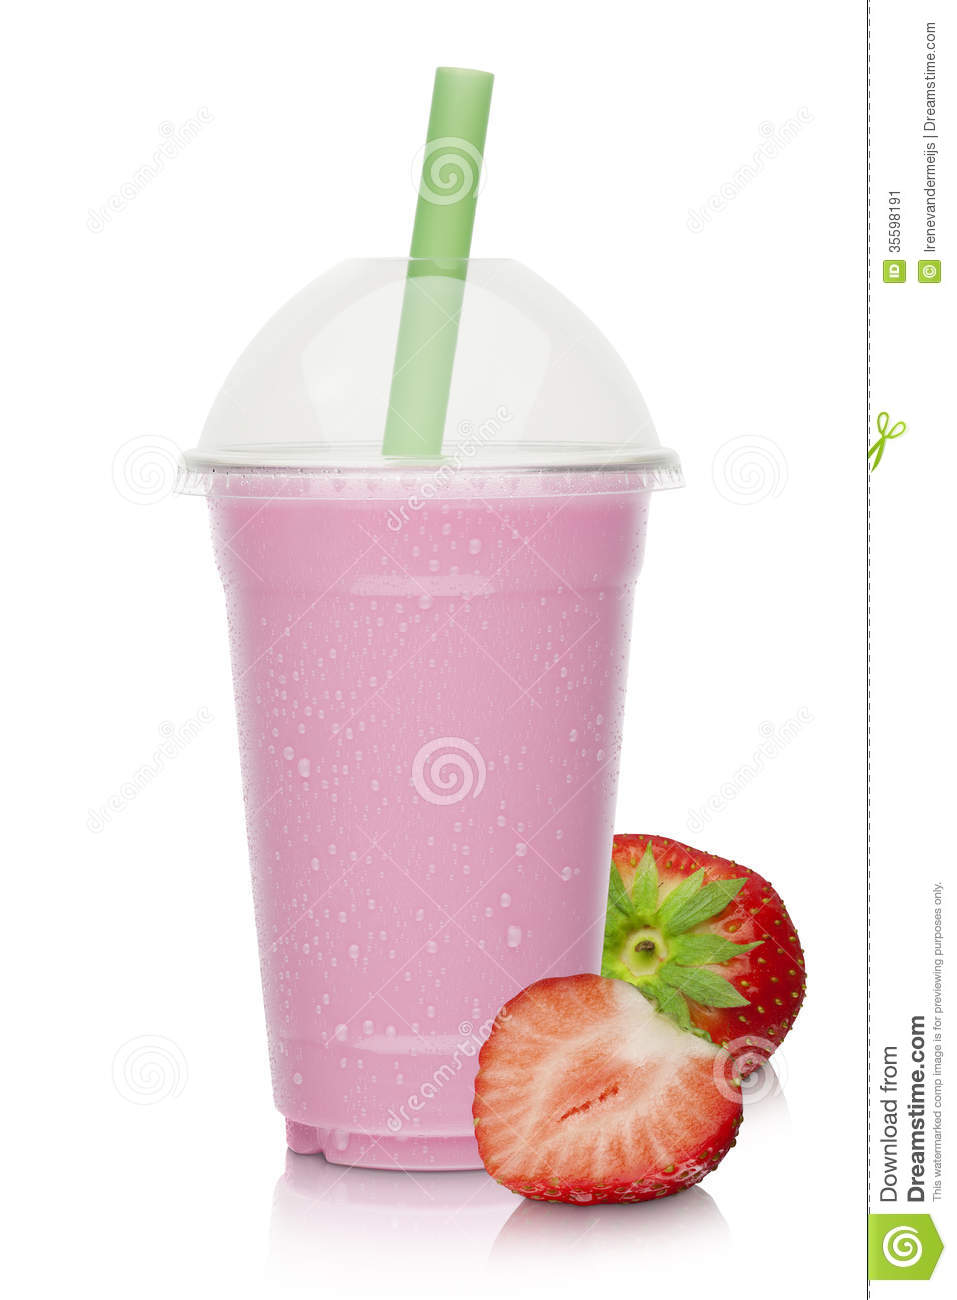 Stock Illustration Cartoon Juice Blender furthermore Royalty Free Stock Images Banana Shake Fresh Over White Background Image34143889 also Shopkins additionally Stock Image Strawberry Milkshake Fresh Strawberries White Background Image35598191 likewise Lineartestpilot. on cartoon smoothie